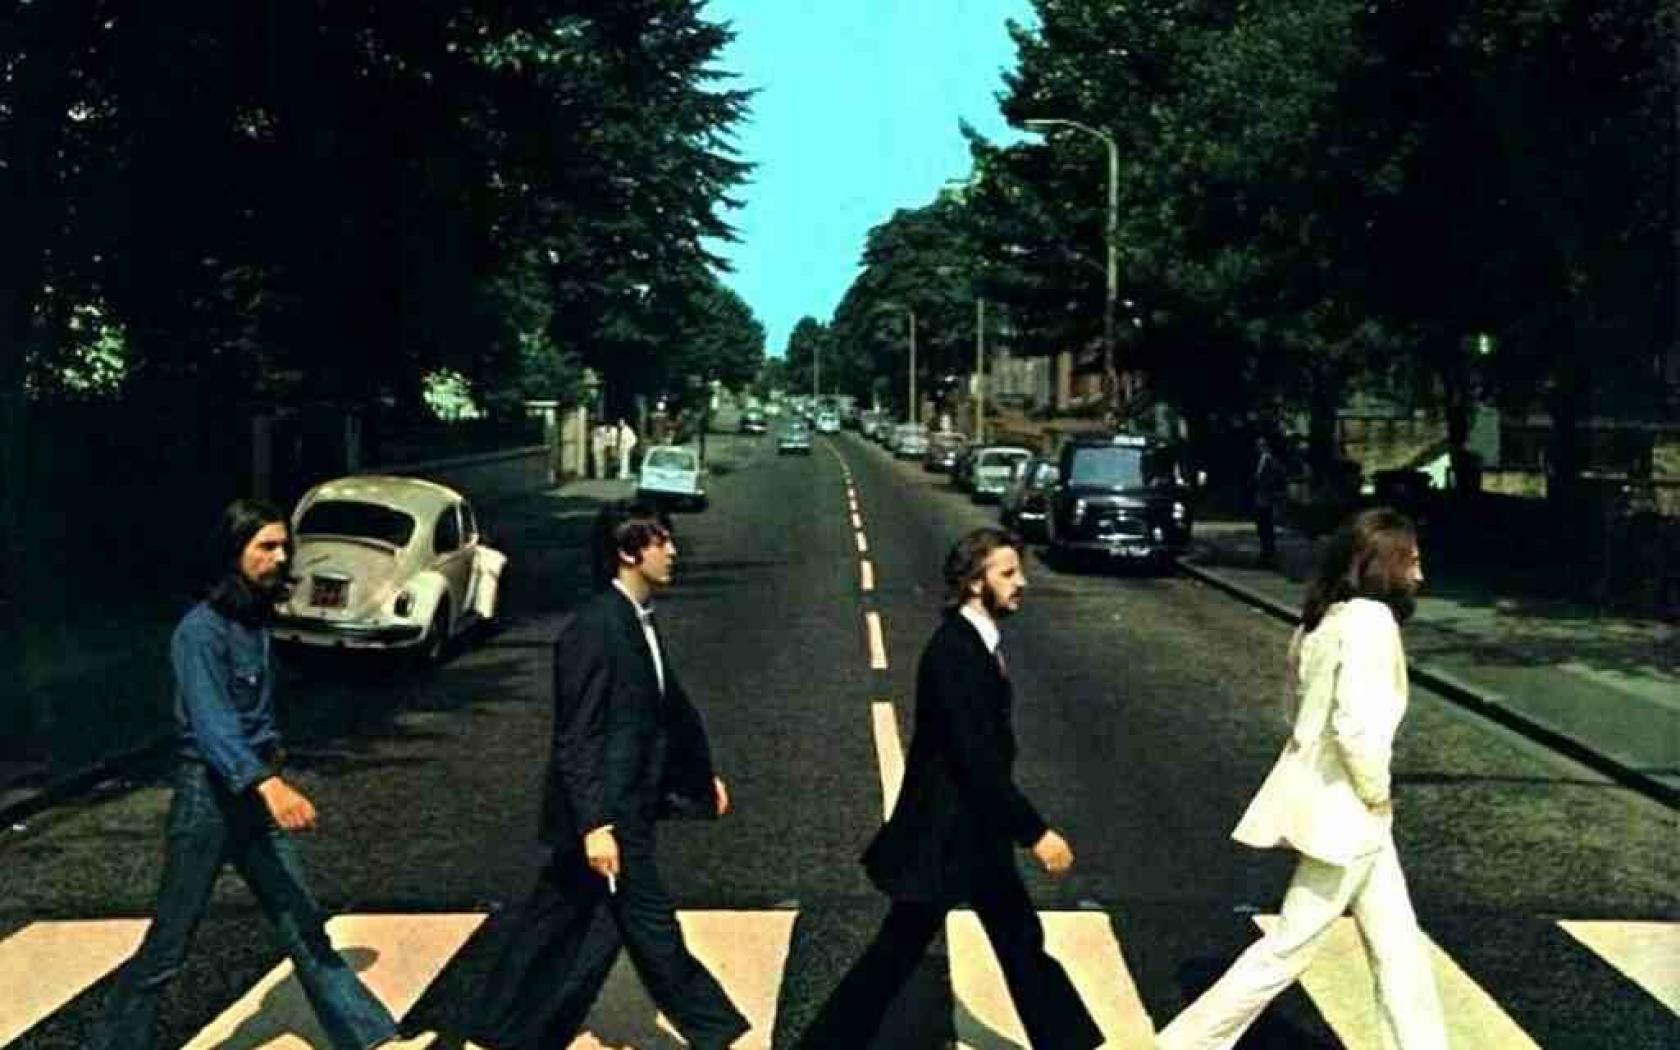 RjhJ8TaM1KF additionally Abbey Road Wallpaper likewise File abbey House Road London Beatles additionally Wallpaper Beatles Abbey Road W moreover Helene Fischer Damit Macht Sie Ihren Fans Das Schoenste Weihnachtsgeschenk. on beatles abbey road